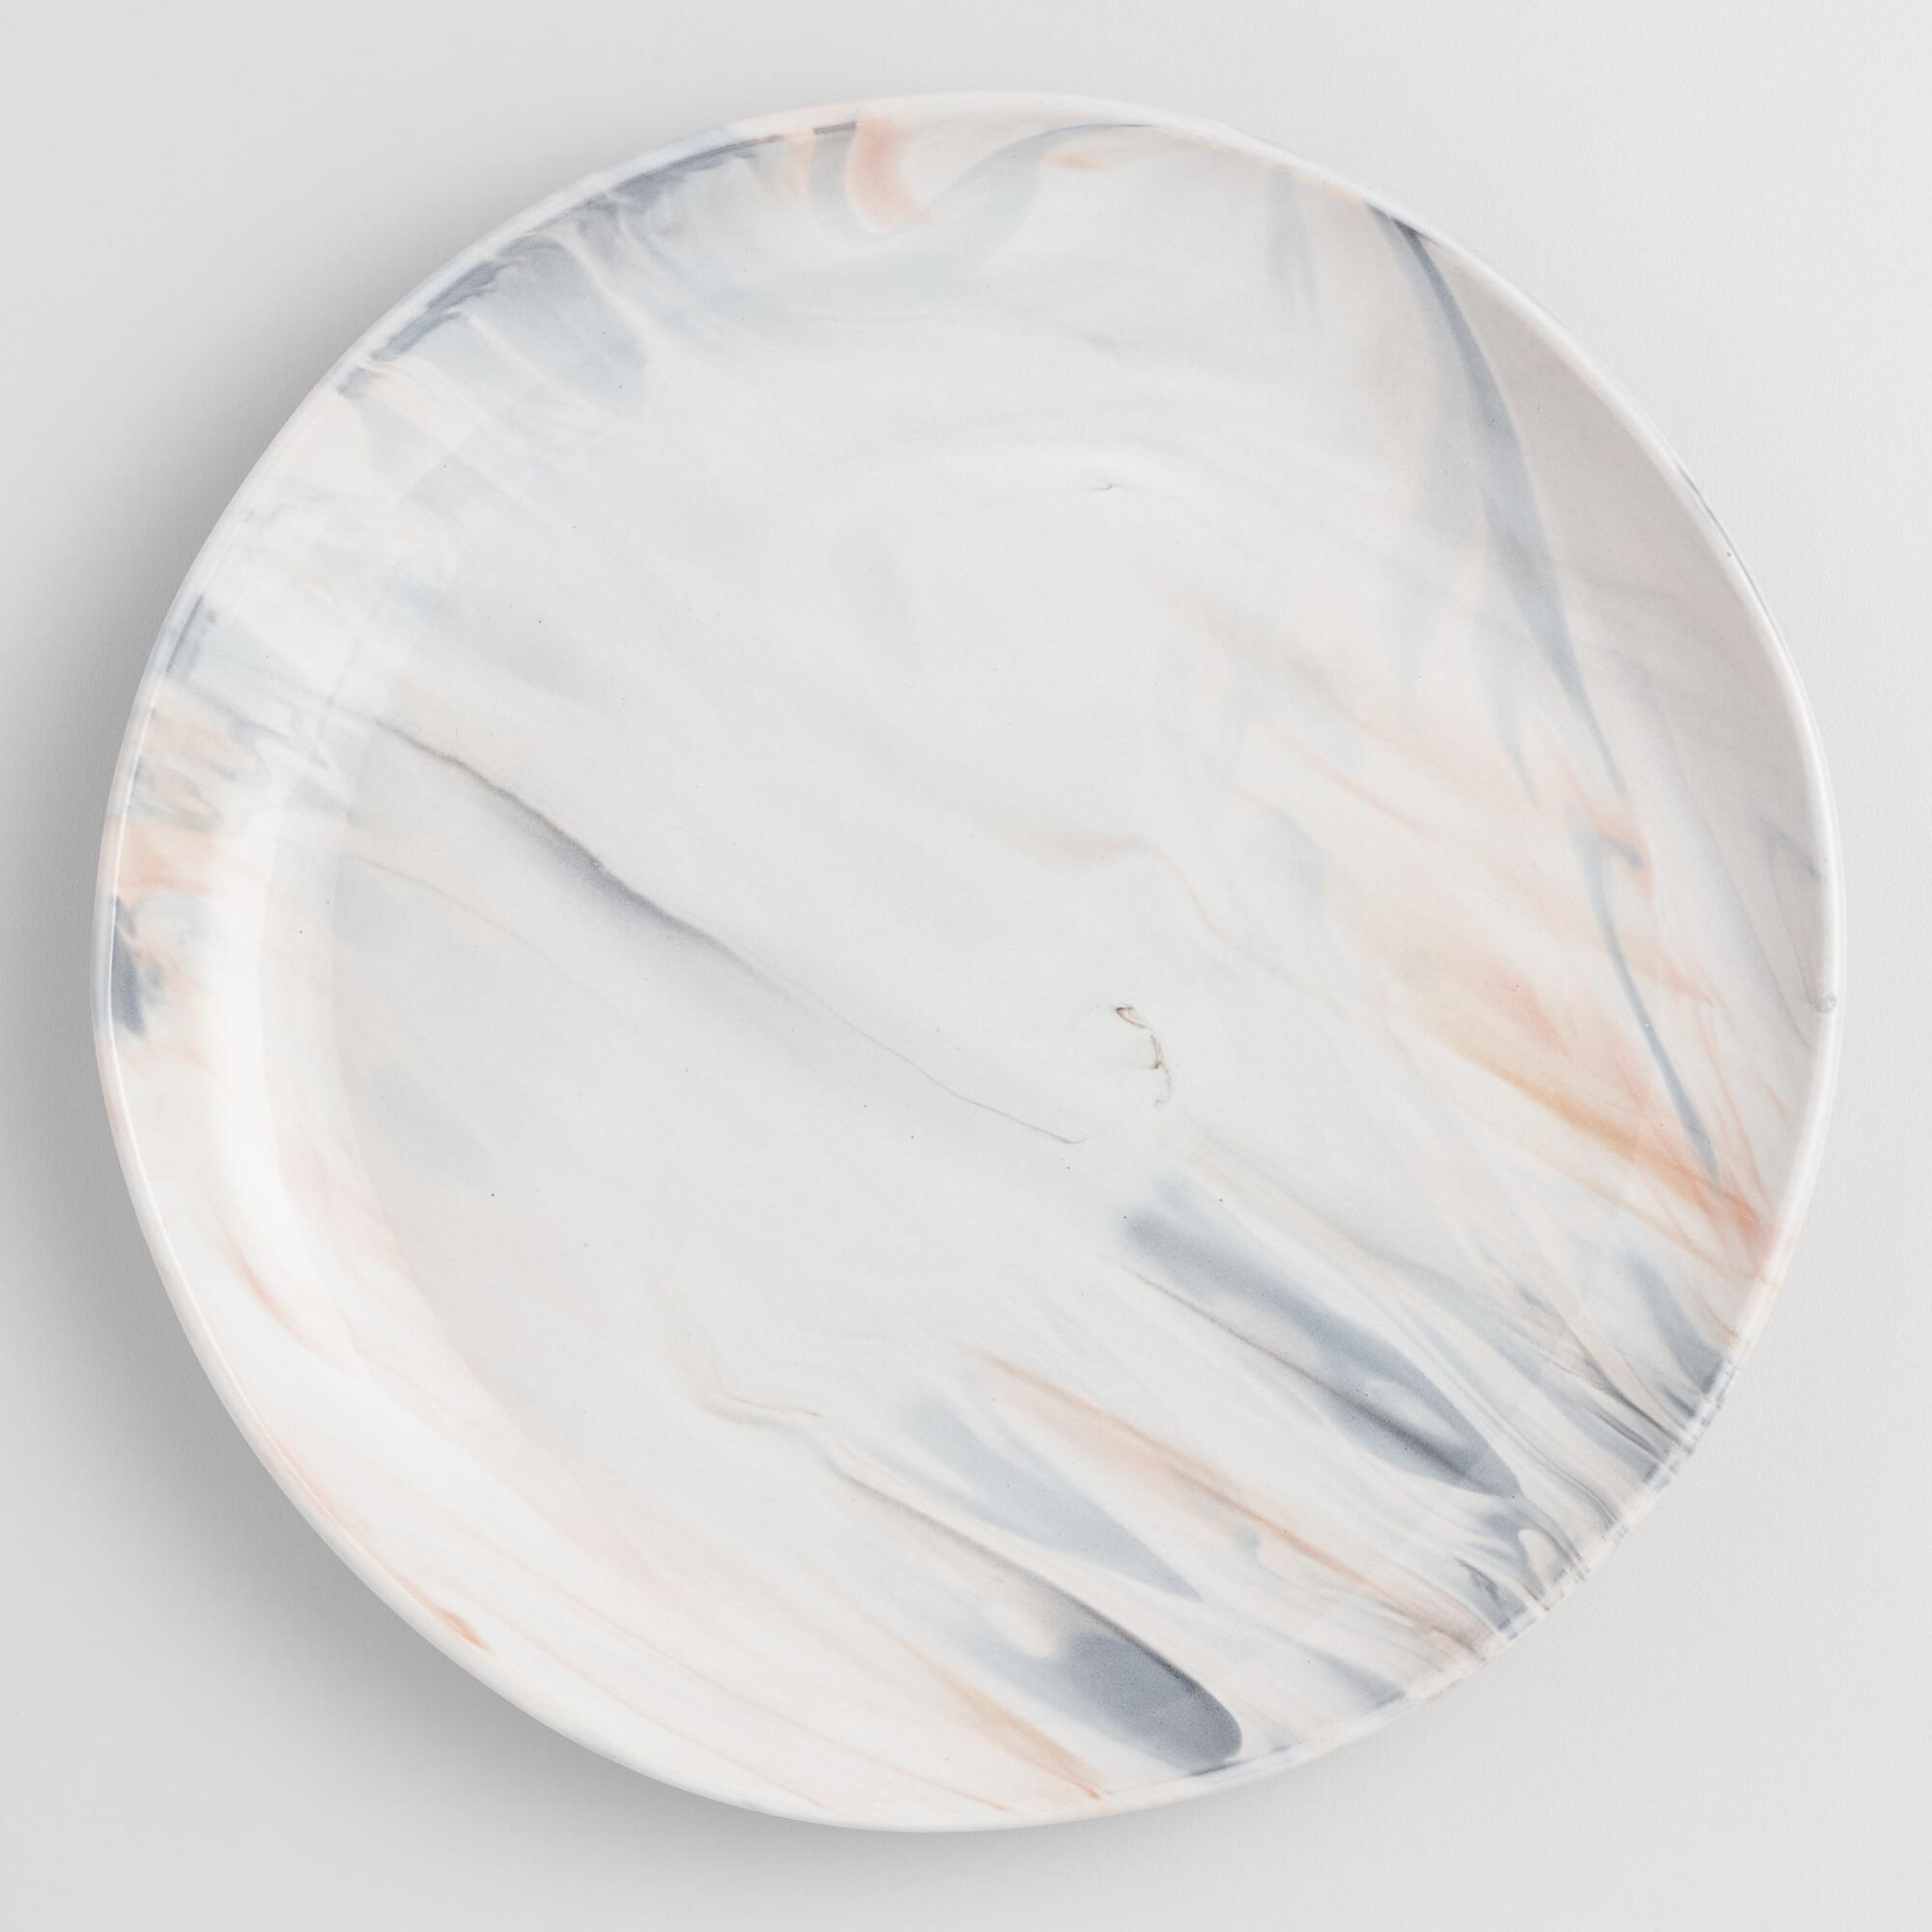 Gray And Tan Marble Dinner Plates Set Of 4 by World Market